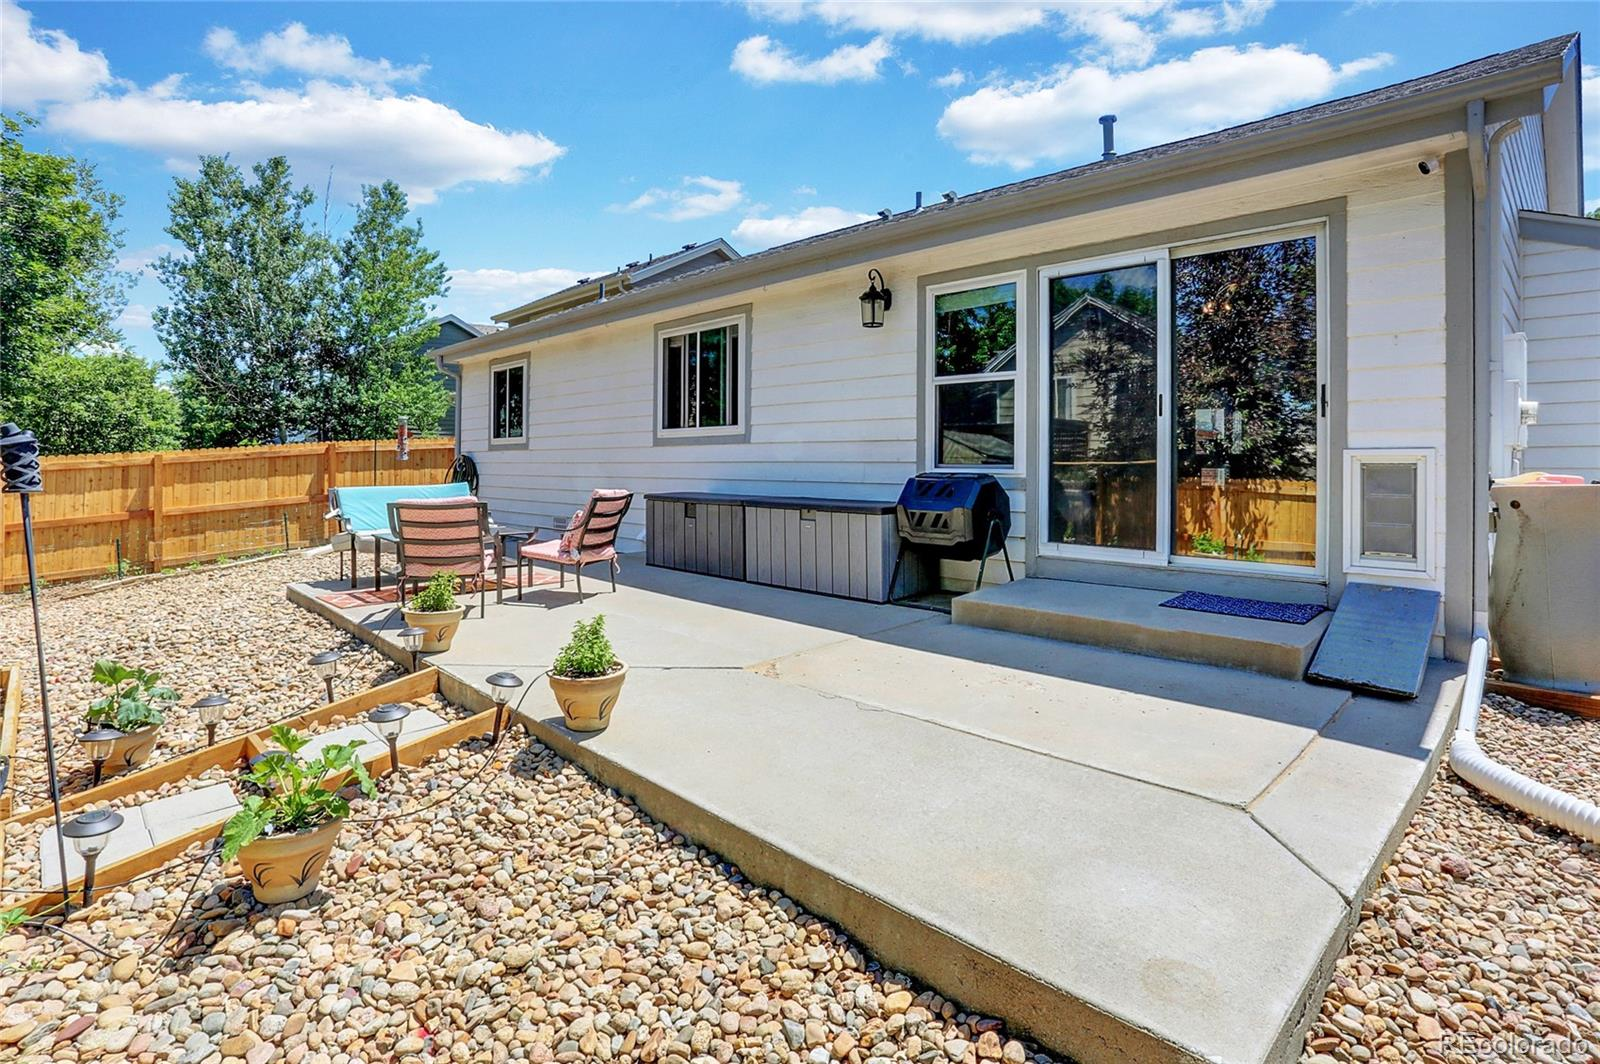 MLS# 7737811 - 24 - 1335 W 133rd Way, Westminster, CO 80234